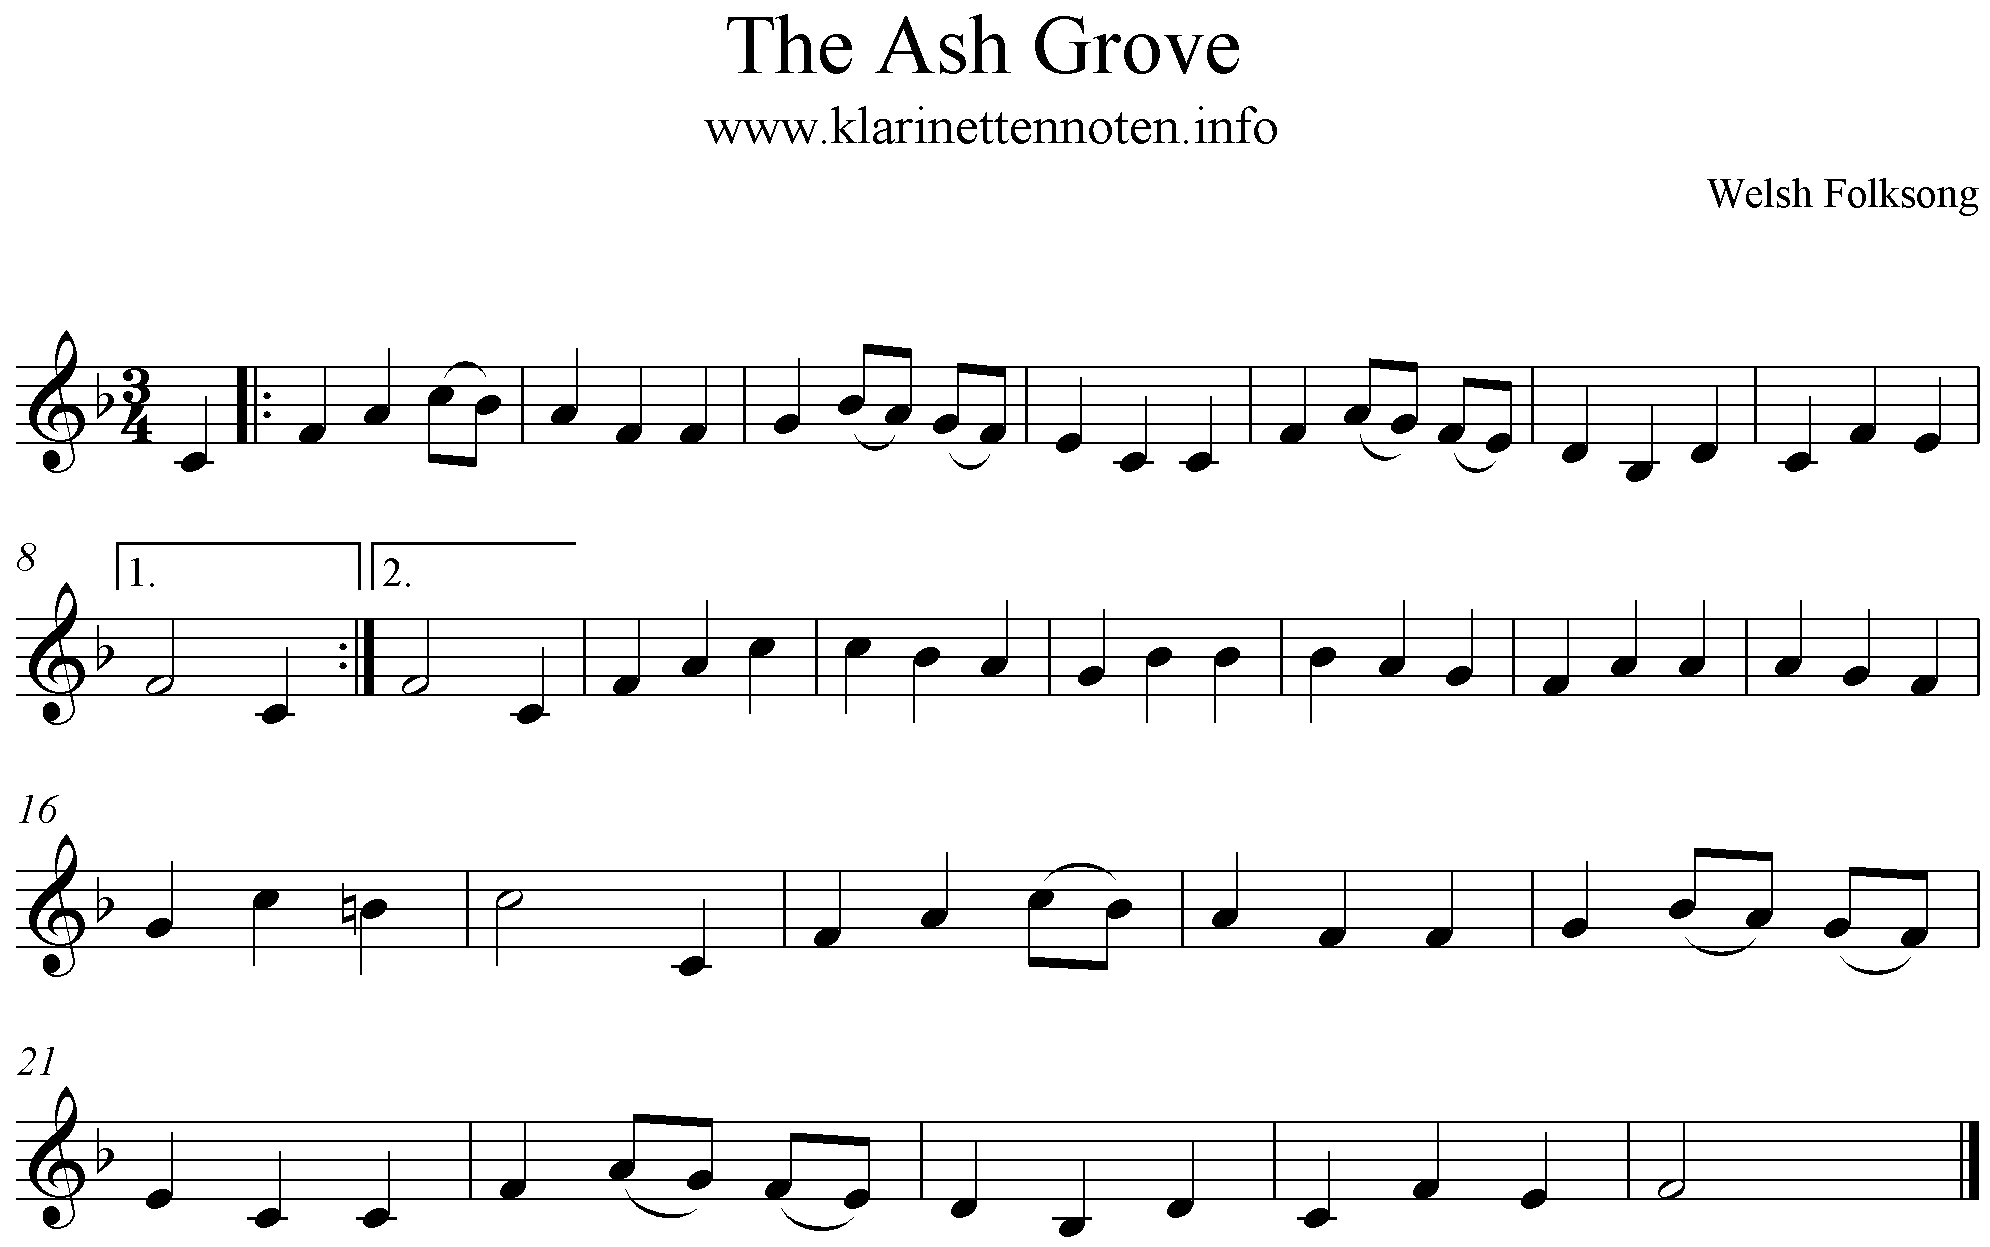 The Ash Grove, Freesheet Music, Clarinet, F-Major